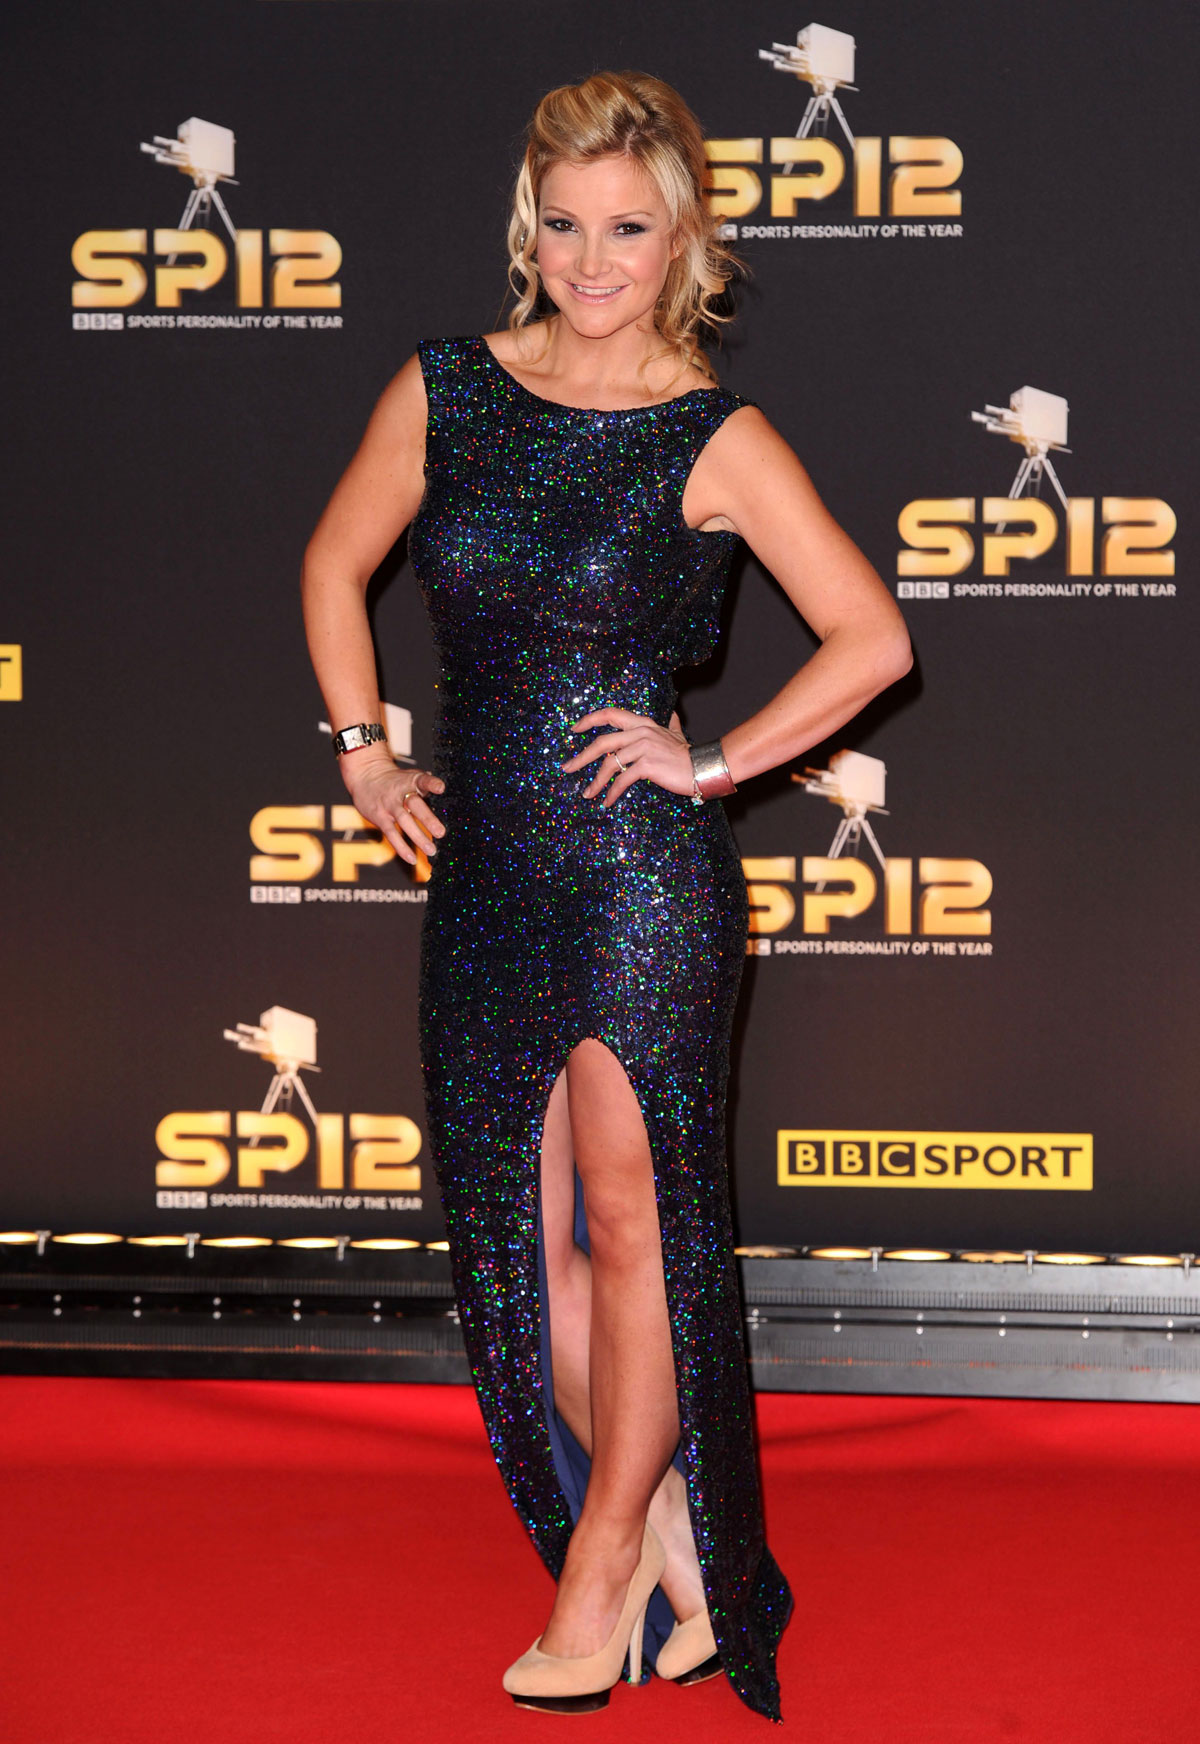 HELEN SKELTON at 2012 BBC Sports Personality of the Year ... Megan Fox Sports